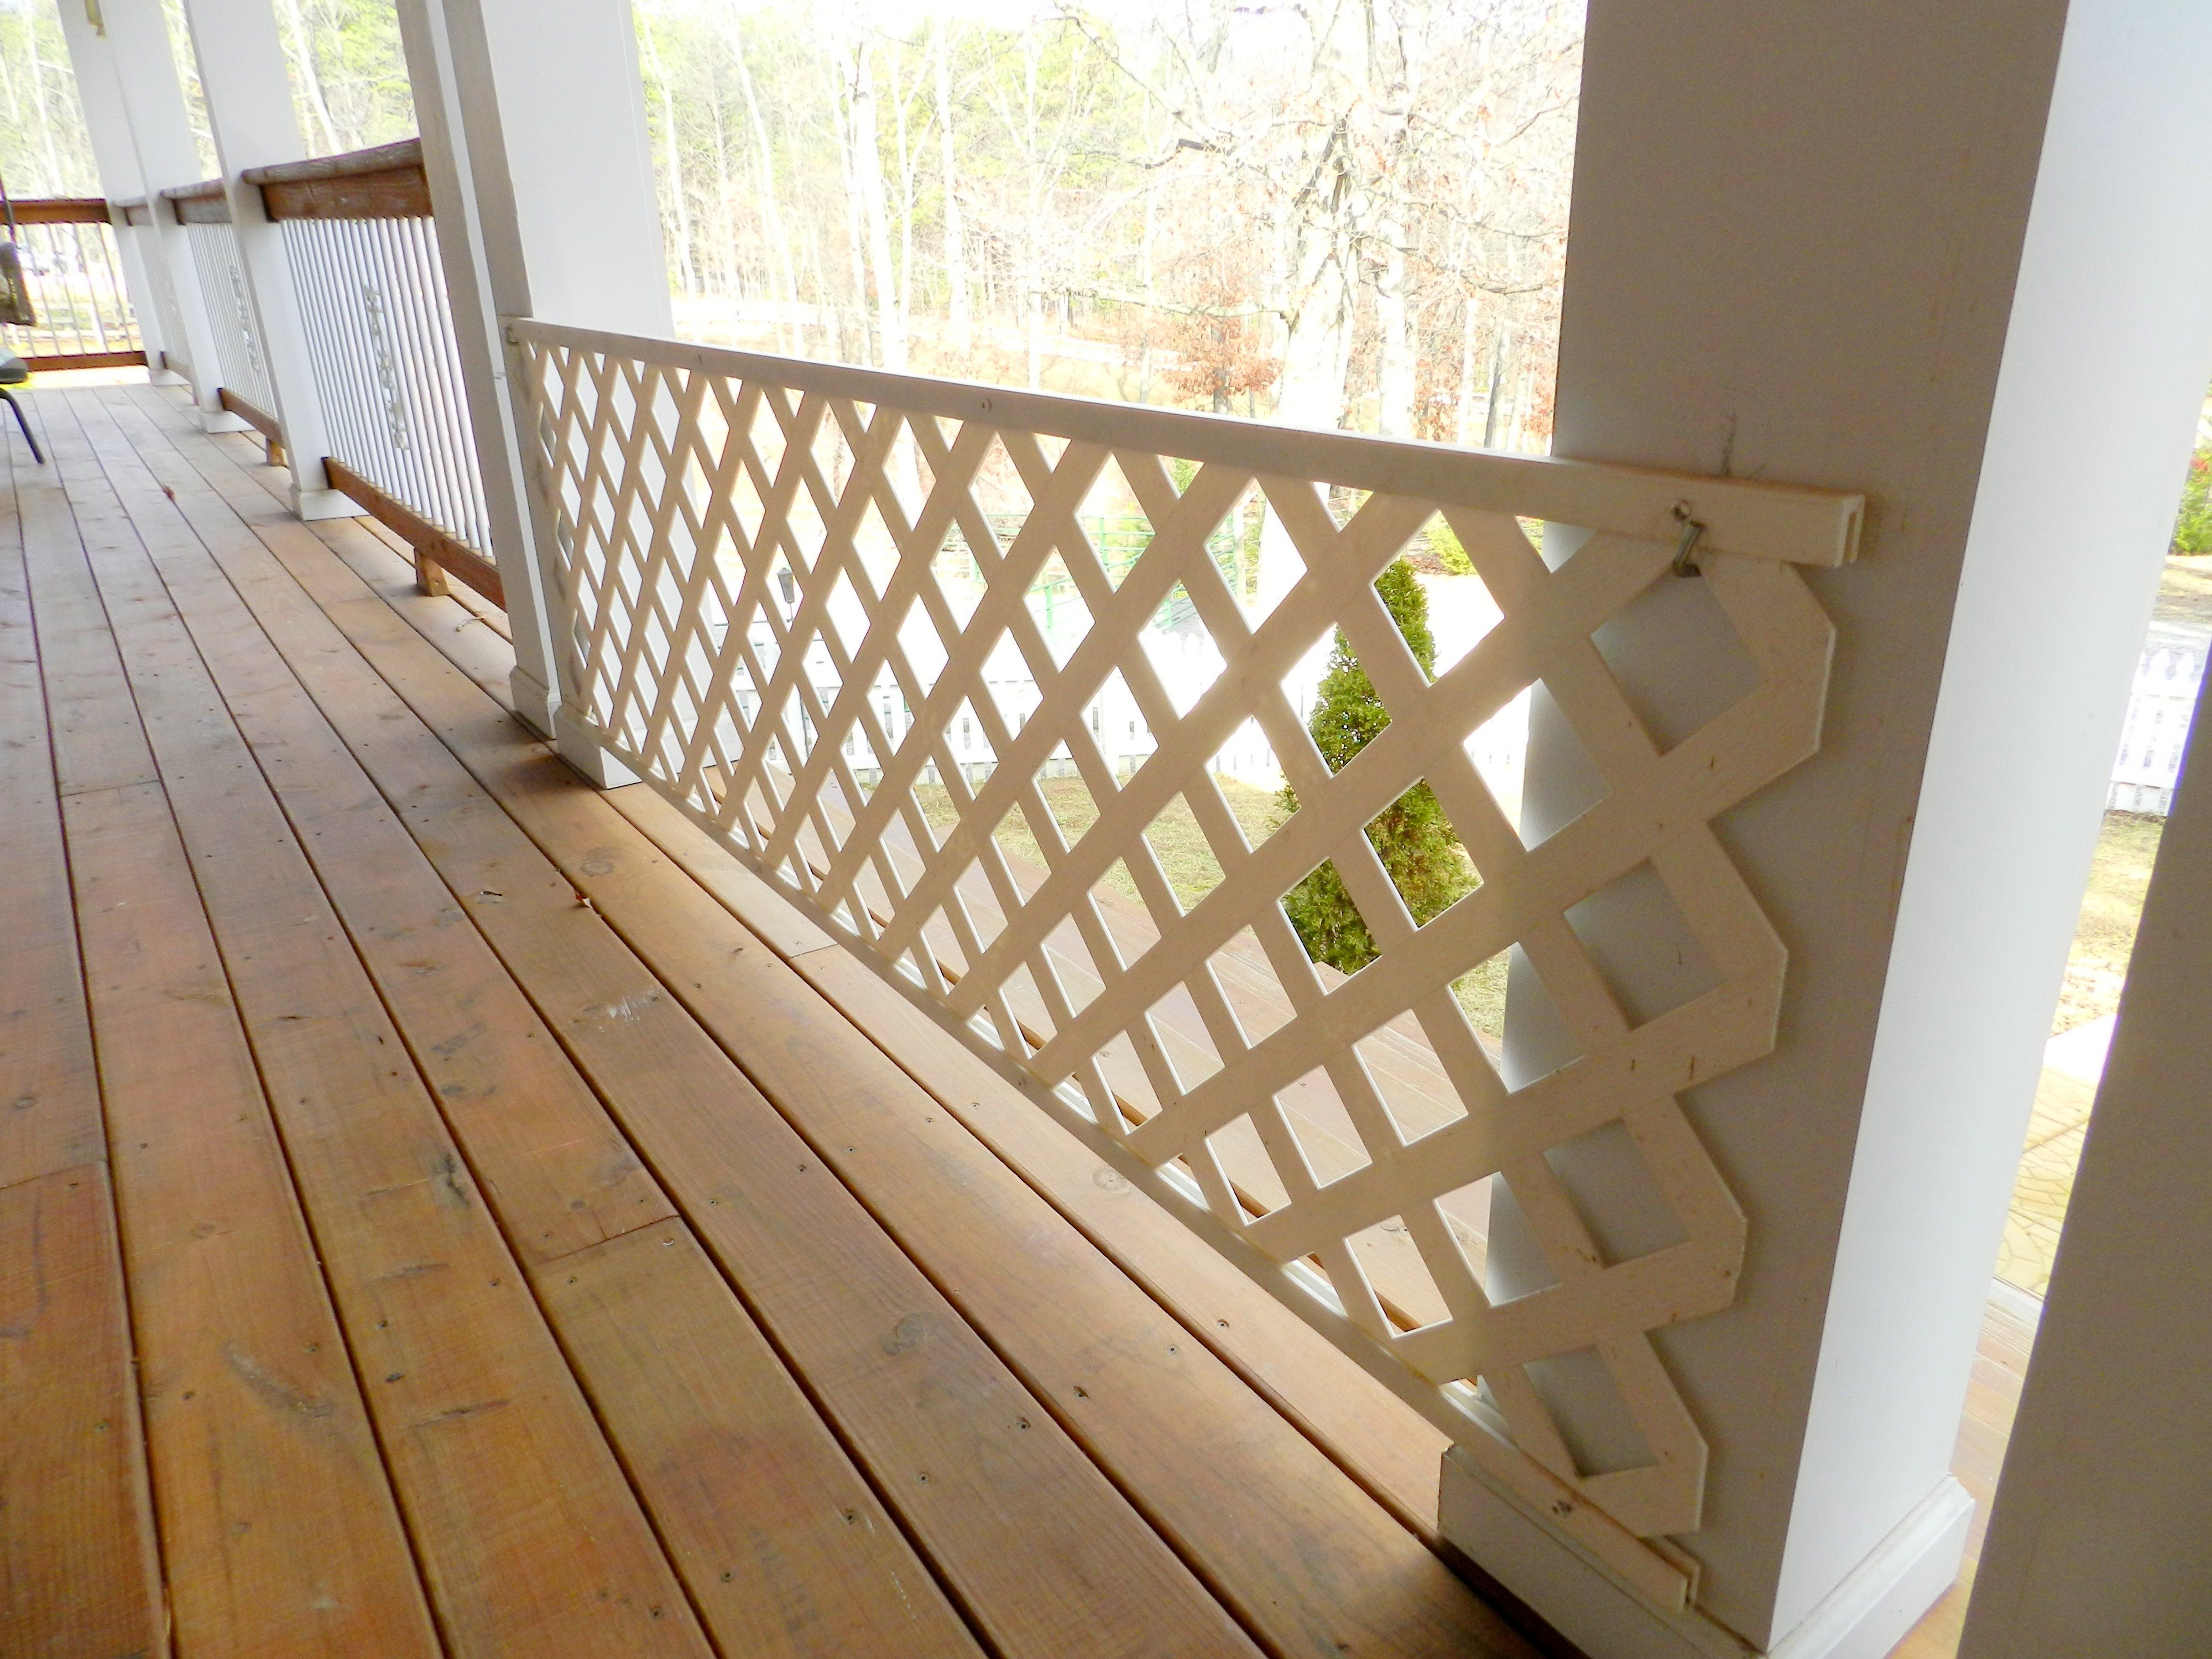 Dog Gate Lattice And Hooks To Hang It Scooby Pinte